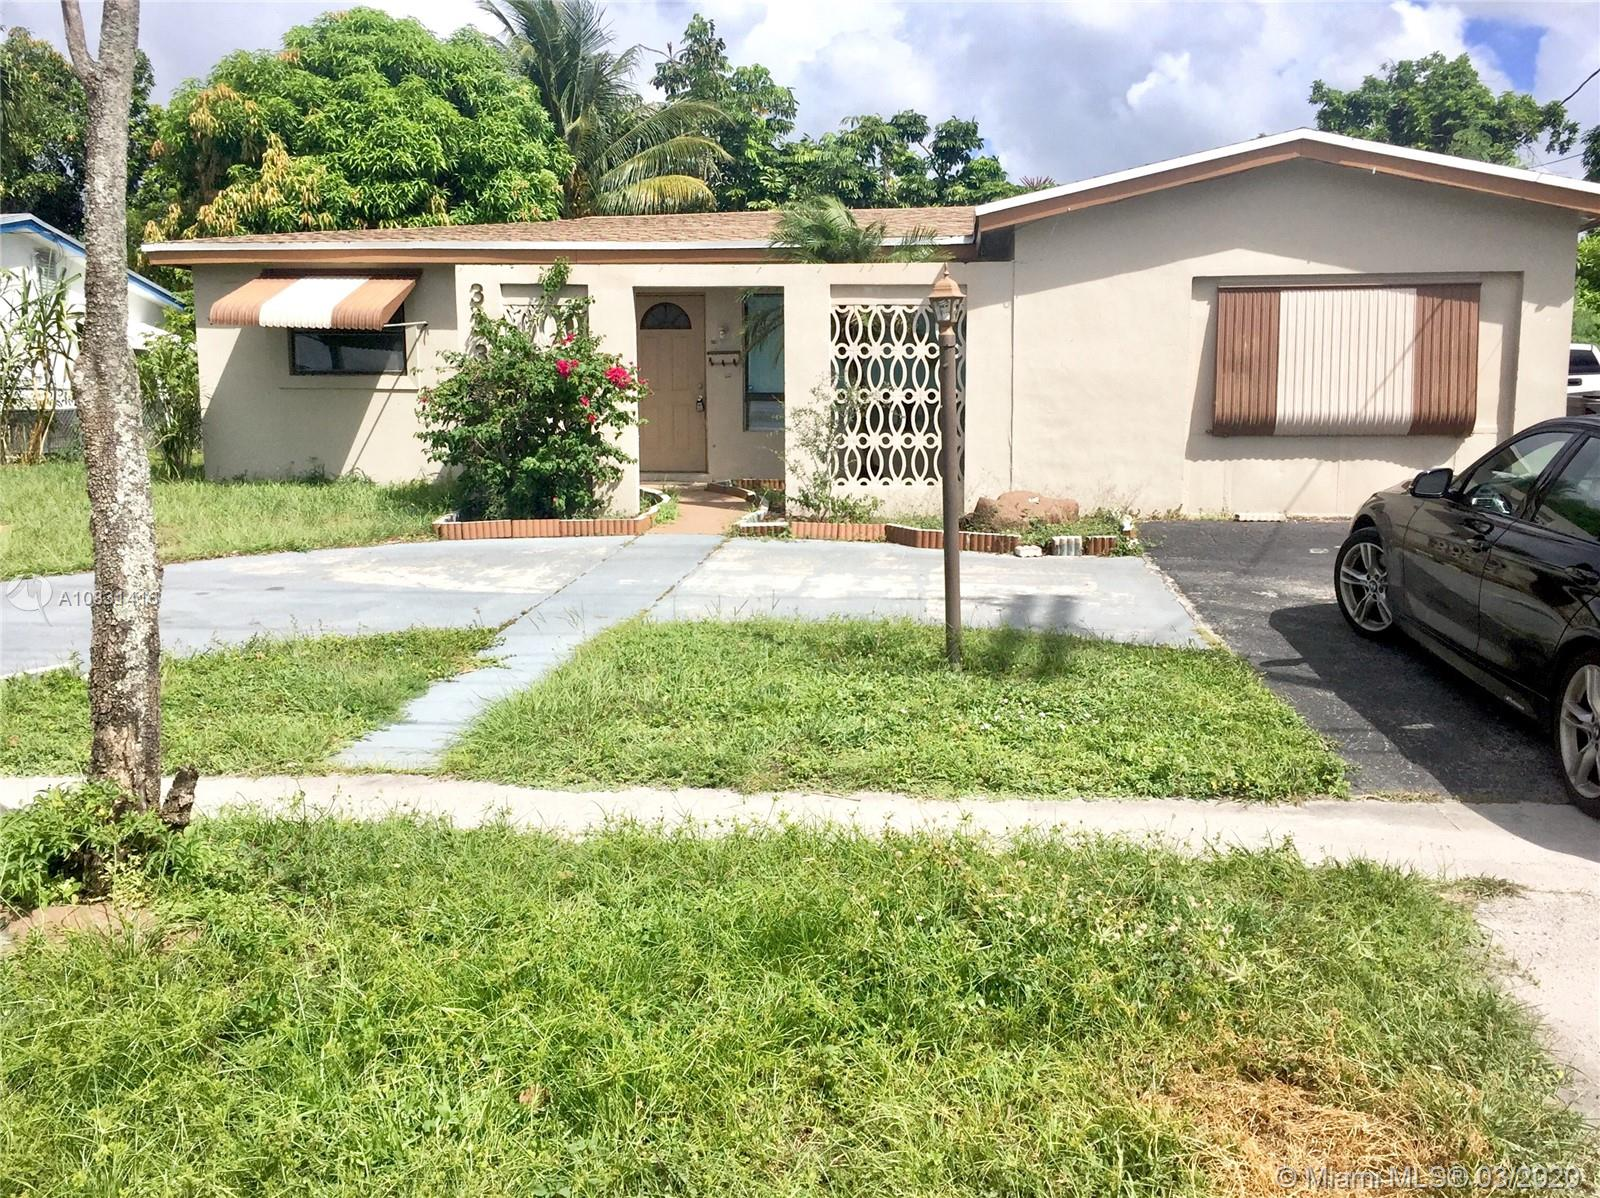 INSTANT EQUITY! TERRIFIC POOL PLUS LAKEFRONT HOME IN UP AND COMING LAUDERDALE LAKES LOCATION CLOSE TO EVERYTHING. THIS SPACIOUS -1700 SQUARE FEET - SPLIT LEVEL 3 BEDROOM 2 BATHROOM HOME HAS BEEN COMPLETELY REMODELED TO REFLECT A MODERN FLAIR WITH BRAND NEW EVERYTHING INCLUDING BRAND NEW KITCHEN, UPDATED BATHROOMS WITH PORCELAIN FLOORING, CHERRY WOOD BRAZILIAN LAMINATE THROUGHOUT, BRAND NEW PERMITTED ROOF LESS THAN 2 YEARS OLD AND NEWER AIR CONDITIONING SYSTEM. PERFECT FOR ENTERTAINING THIS HOME OFFERS A POOL WITH GORGEOUS VIEWS OF THE LAKE. FRESHLY PAINTED. FHA AND AND VA BUYERS OK. TEXT LA FOR SHOWING INSTRUCTIONS.